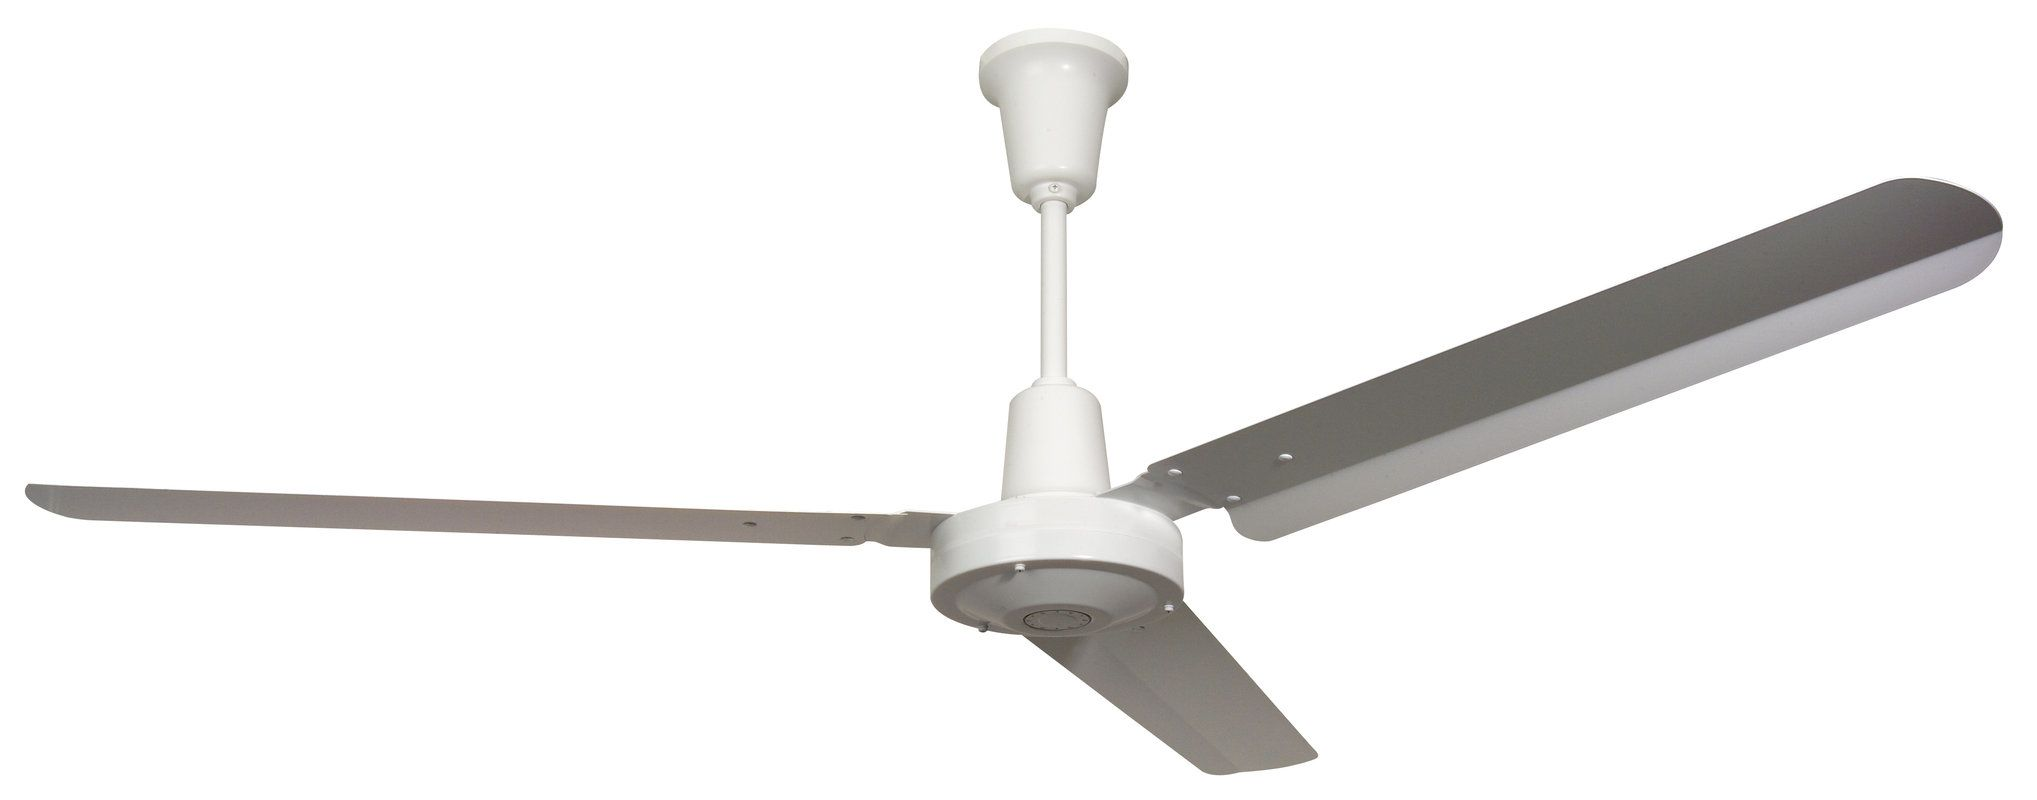 Craftmade VE58SS3 Stainless Steel Ceiling Fan Build